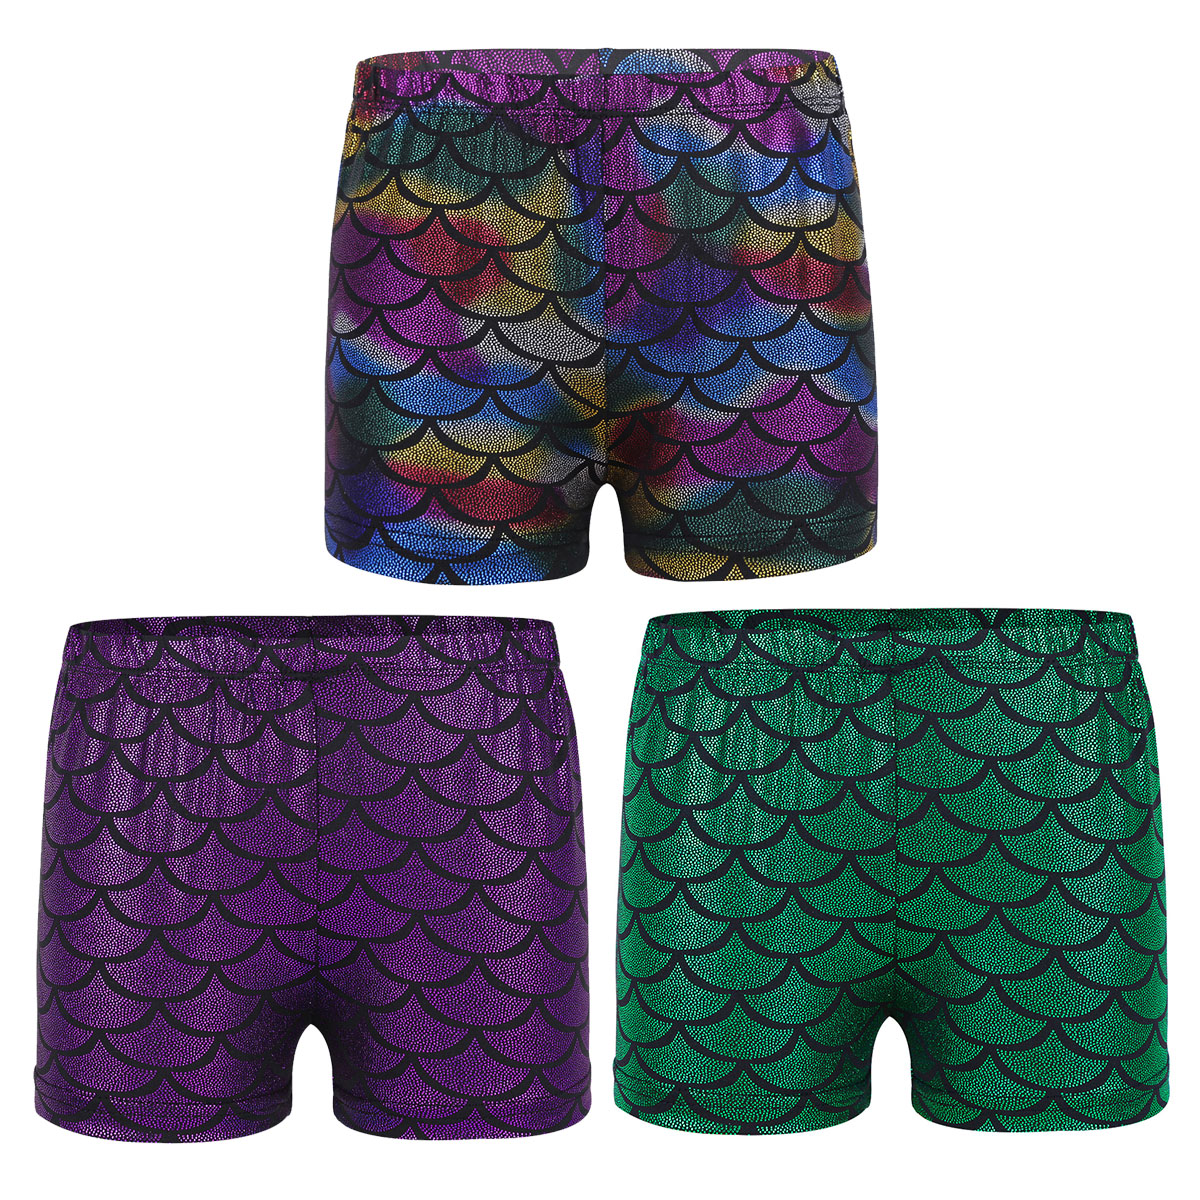 Agoky Kids Girls Shiny Fish Mermaid Scales Printed Dance Gymnastic Workout Shorts